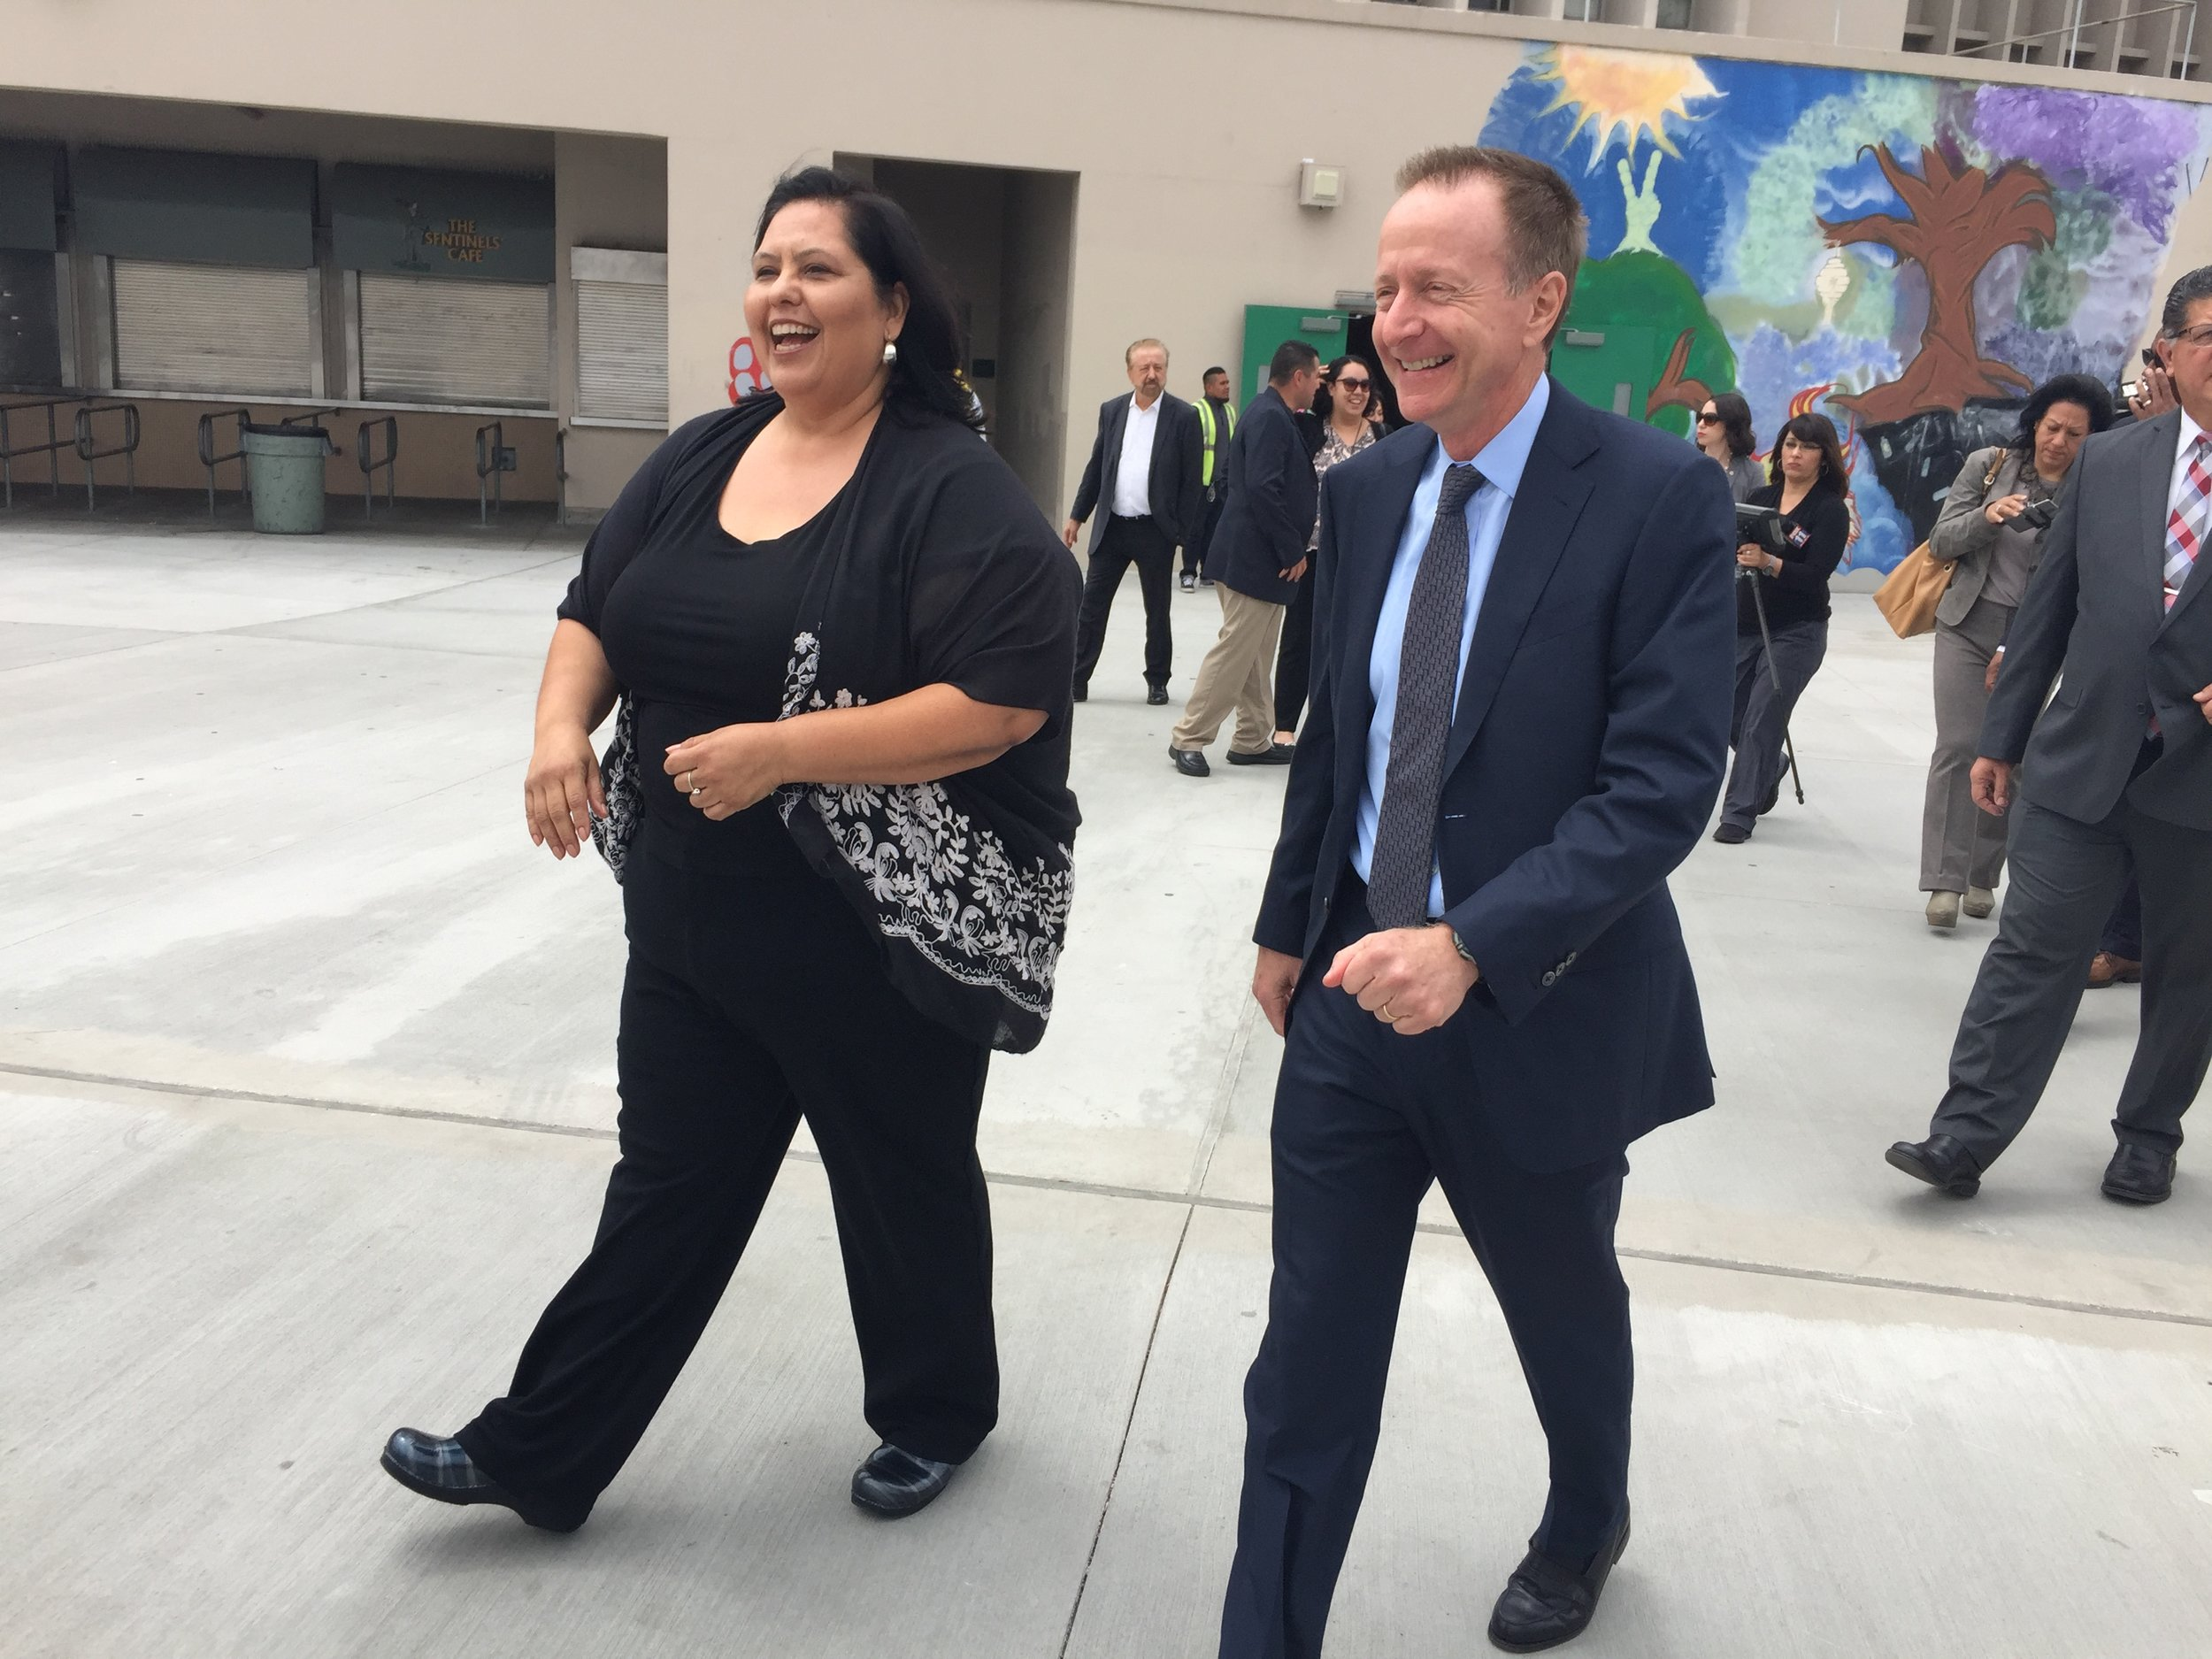 LAUSD Board President Monica Garcia and Superintendent Austin Beutner at Belmont High